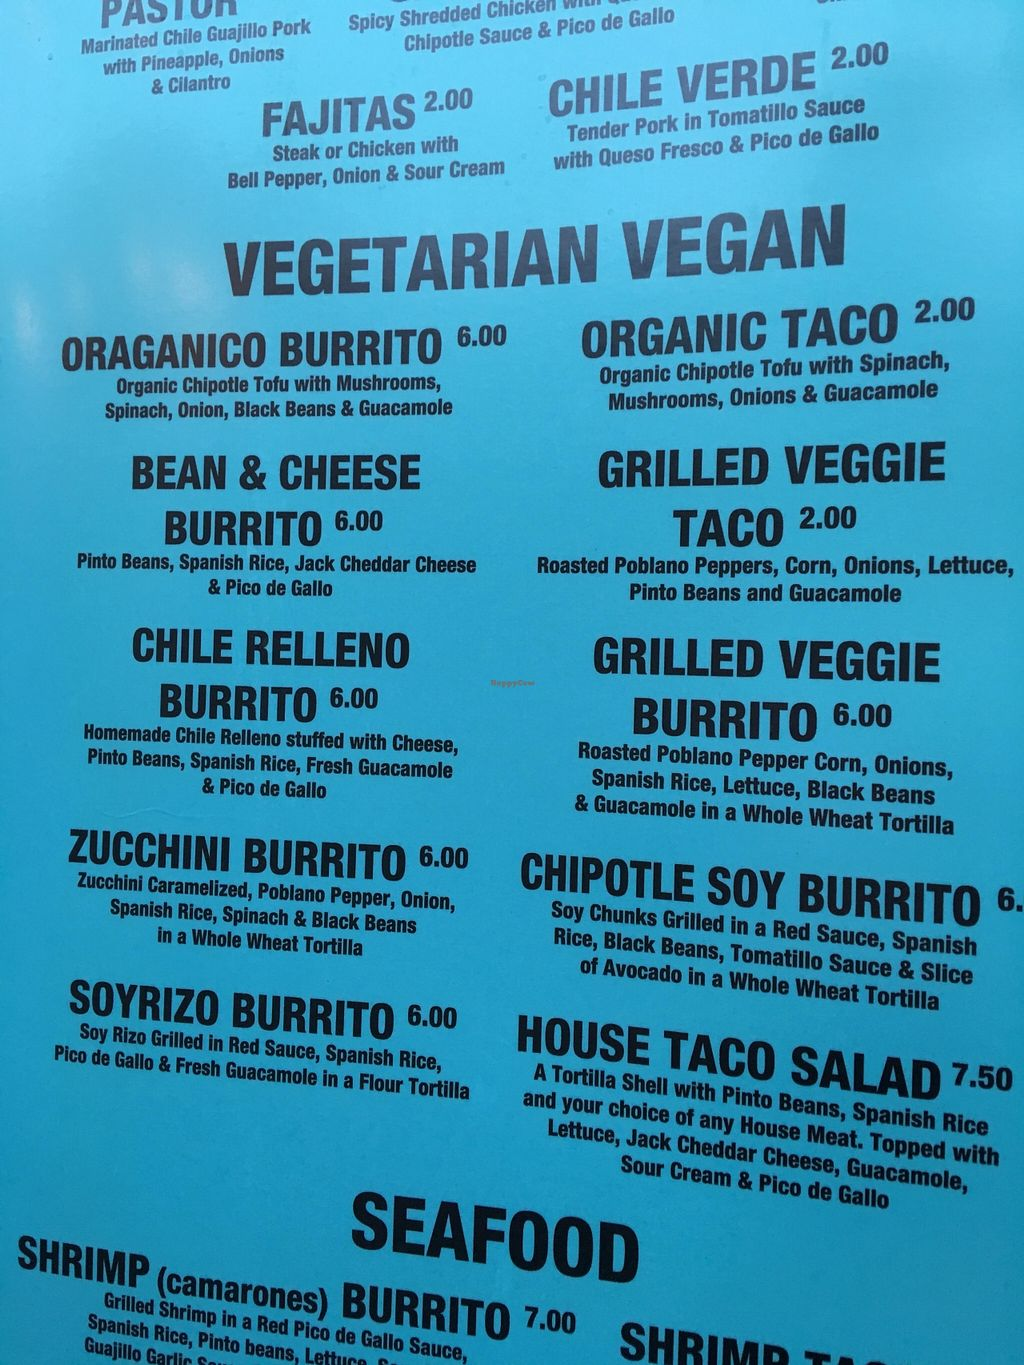 """Photo of Azul Tequila Mexican Taqueria - Food Truck  by <a href=""""/members/profile/Arthousebill"""">Arthousebill</a> <br/>Veg menu <br/> April 22, 2016  - <a href='/contact/abuse/image/72747/145796'>Report</a>"""